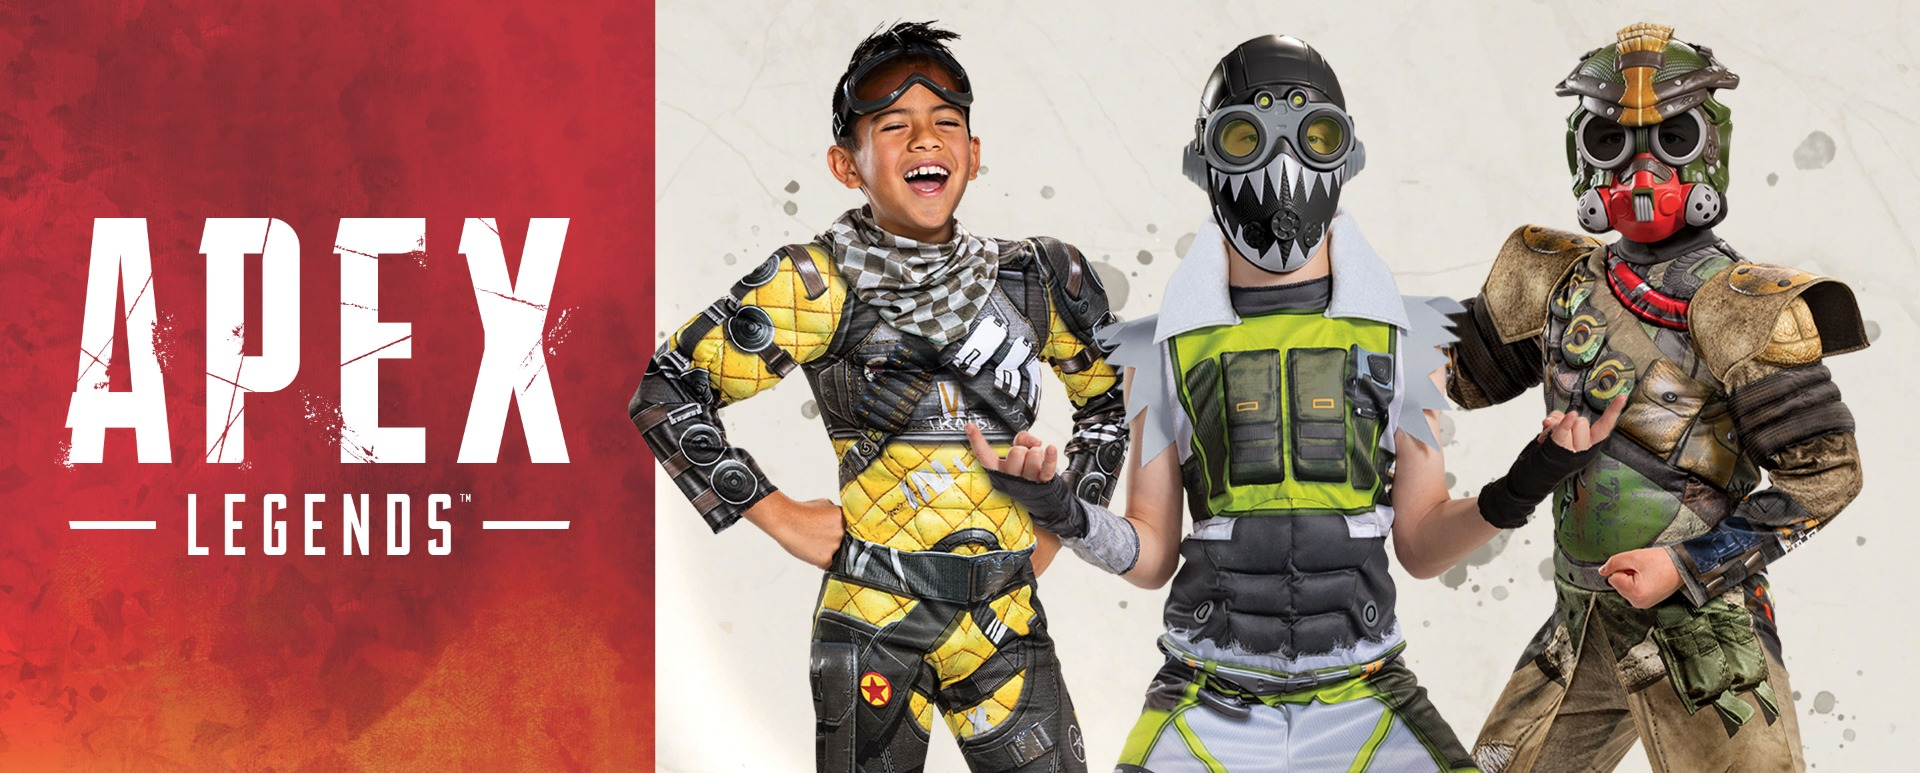 Apex Legends costumes